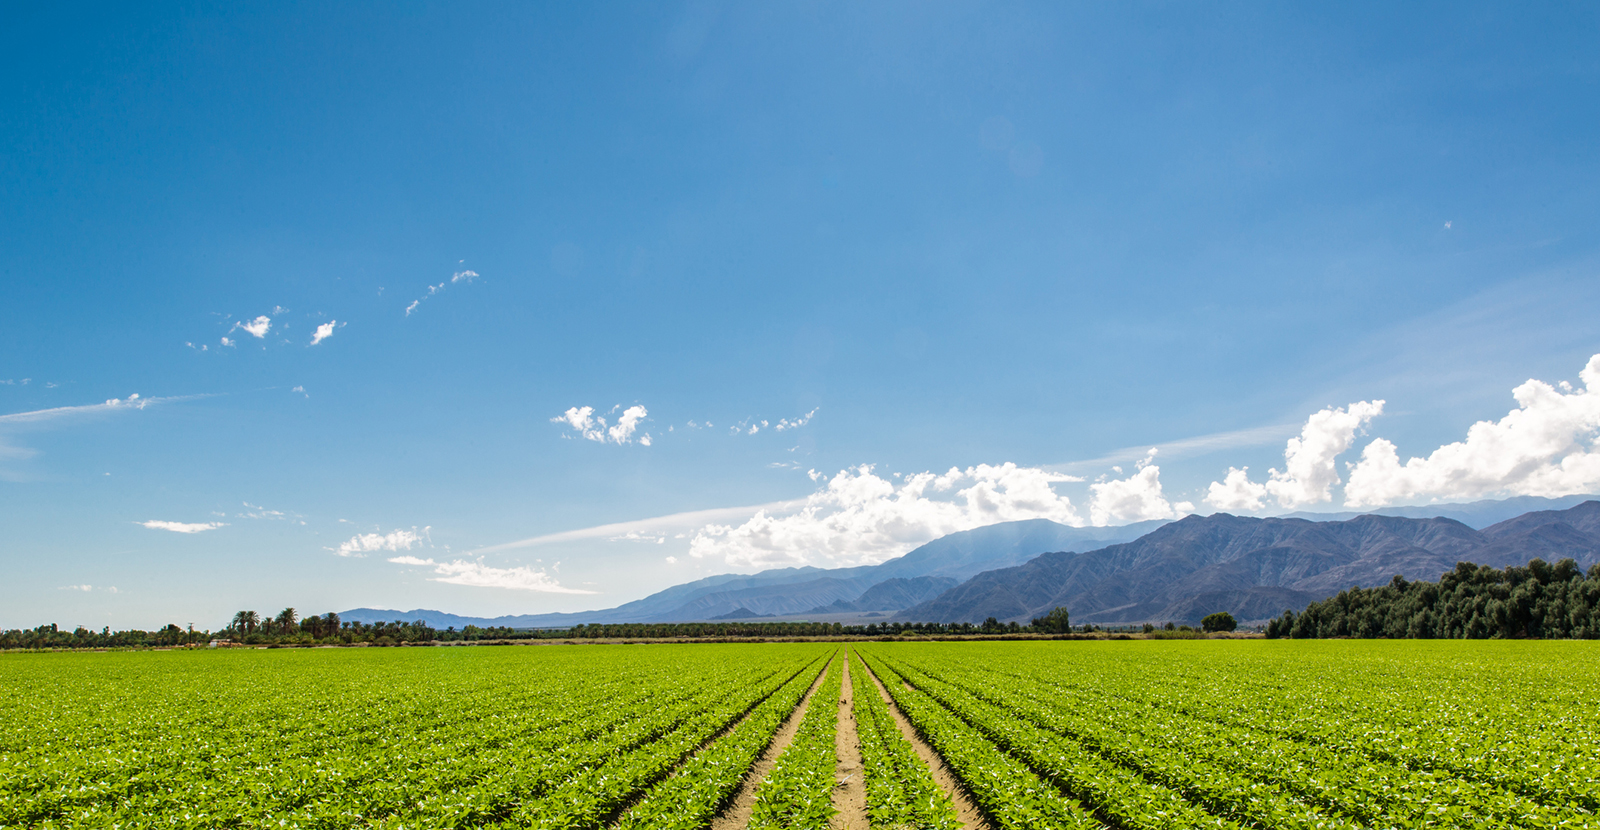 Agricultural Field image